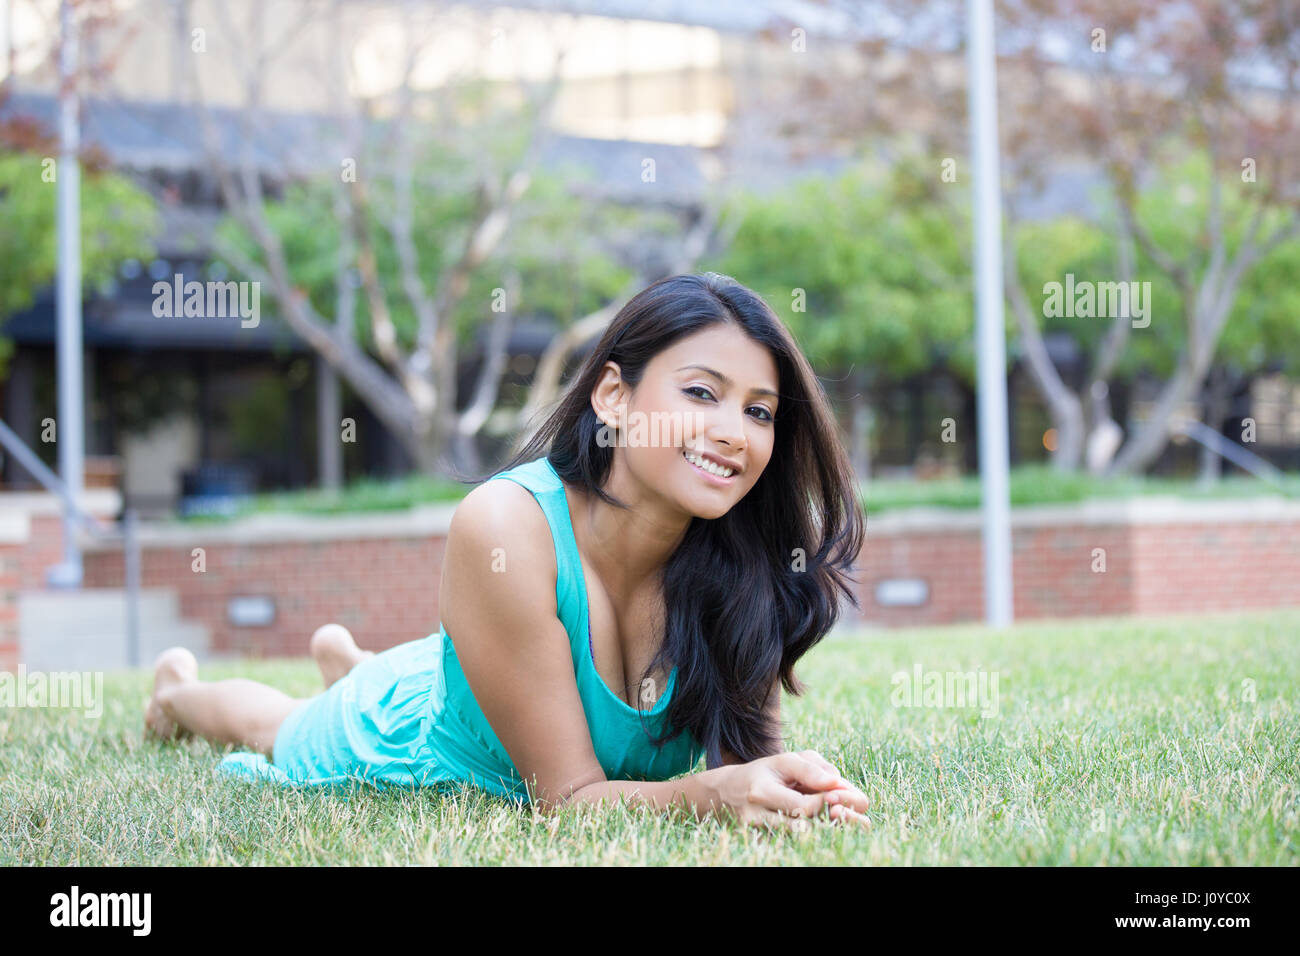 Closeup portrait, beautiful woman in blue green dress lying on stomach on grass, isolated outside outdoors trees - Stock Image